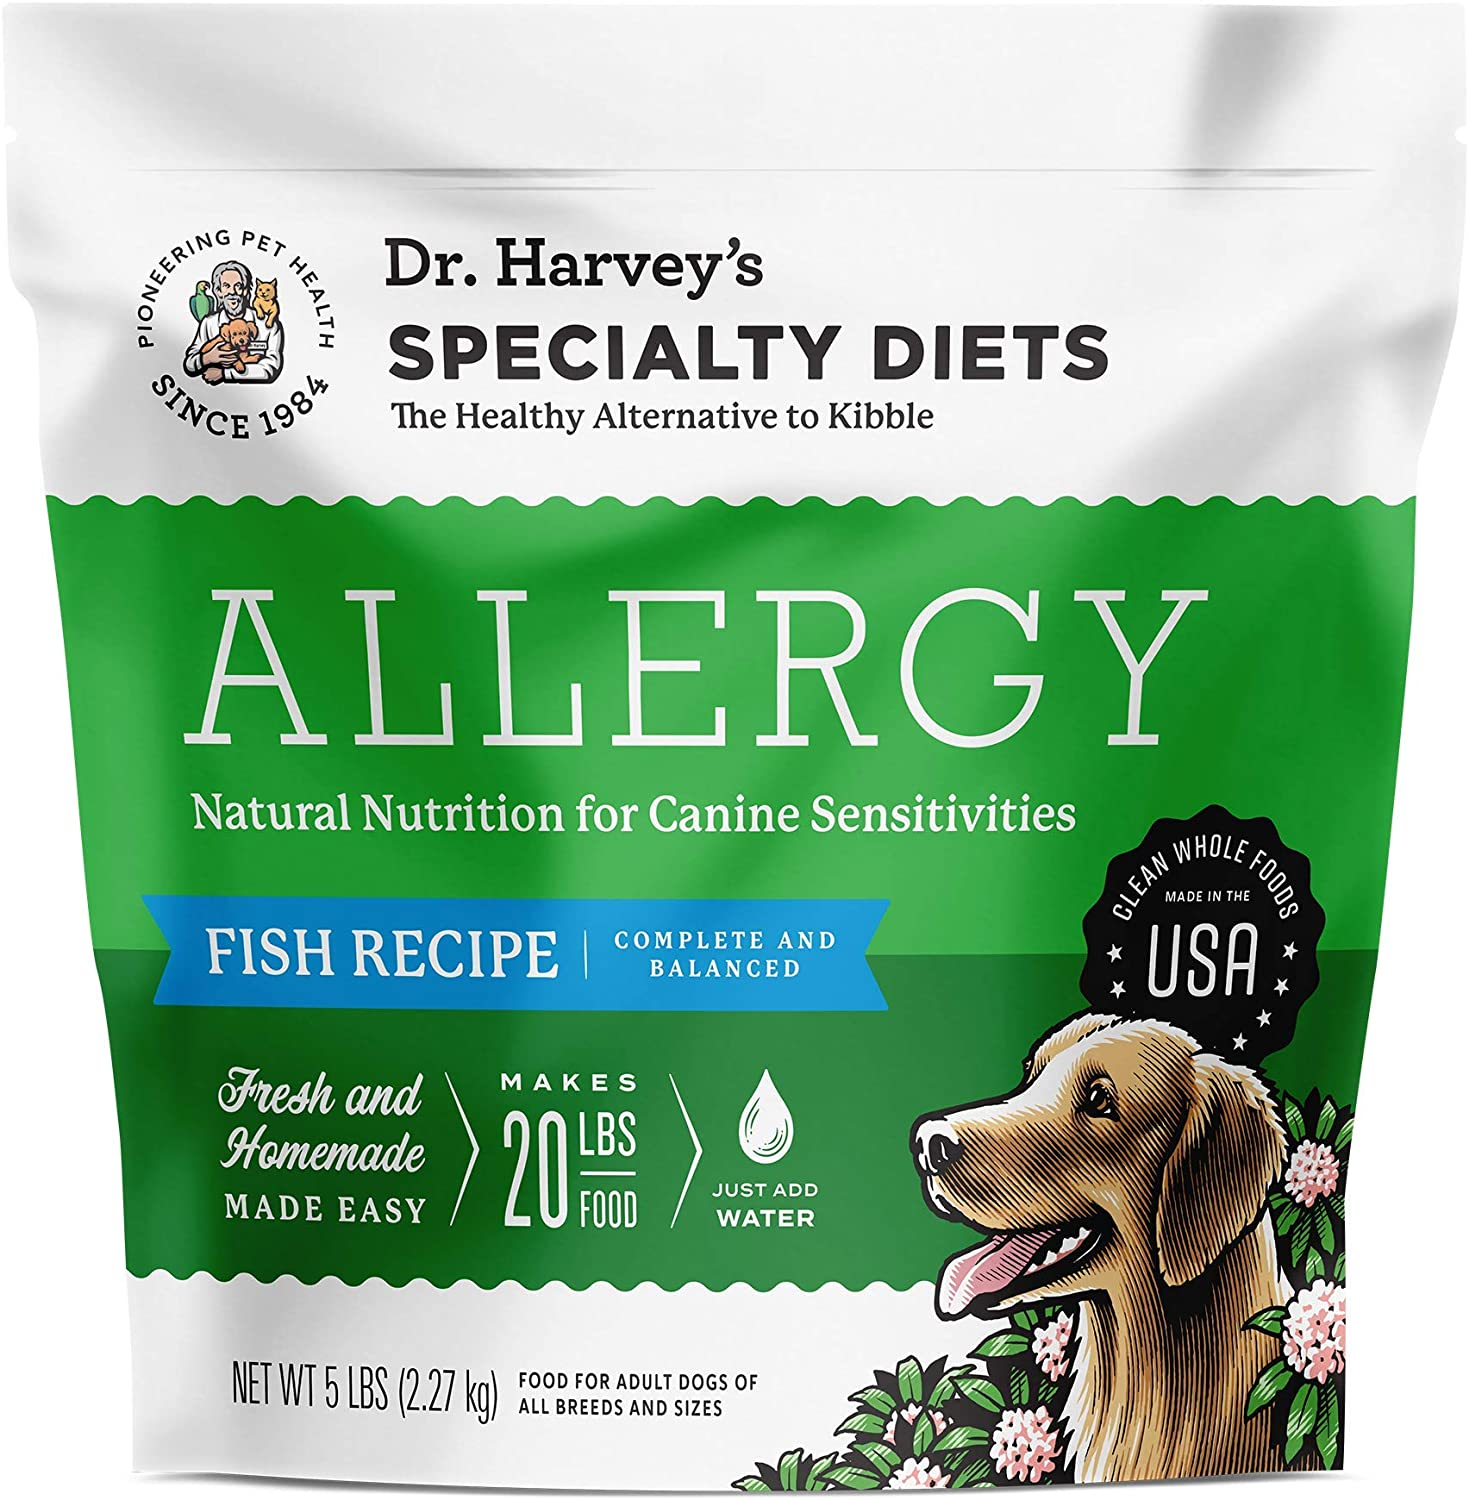 Dr. Harvey's Specialty Diet Allergy Fish Recipe, Human Grade Dog Food for Dogs with Sensitivities and Allergies (5 Pounds)